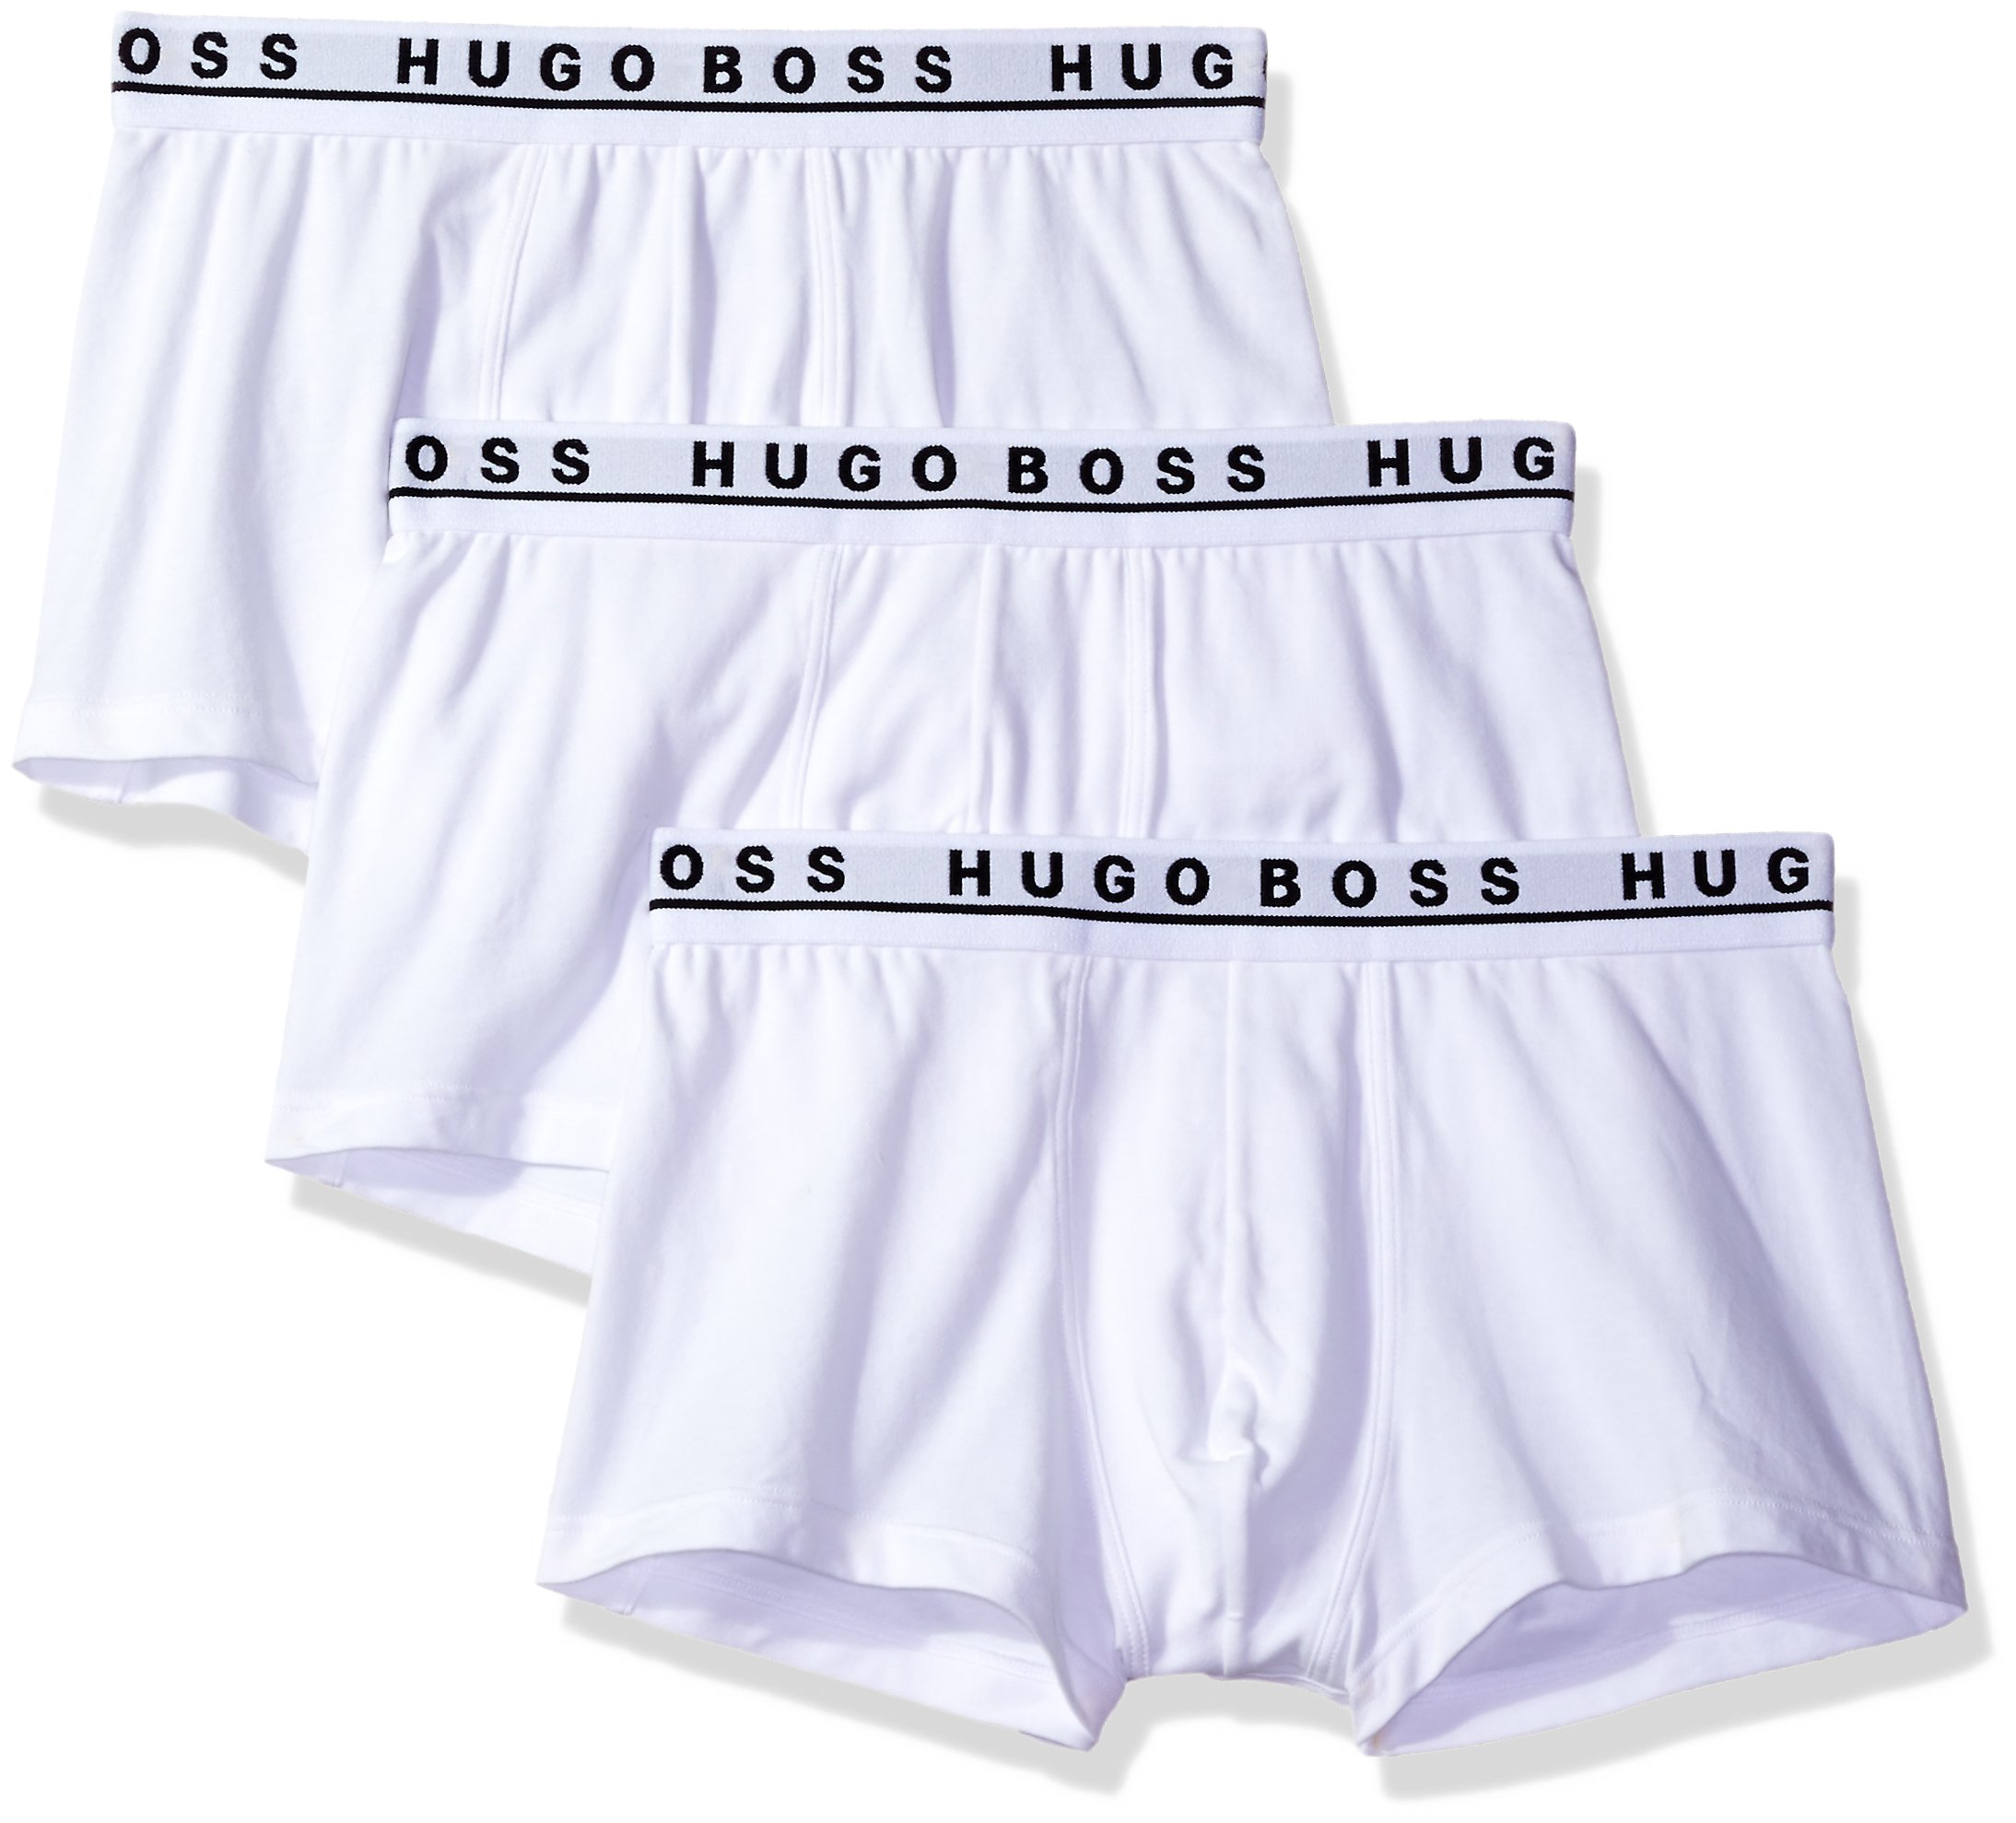 Hugo Boss BOSS Men's Trunk 3p Co/el 10146061 01, White, Medium